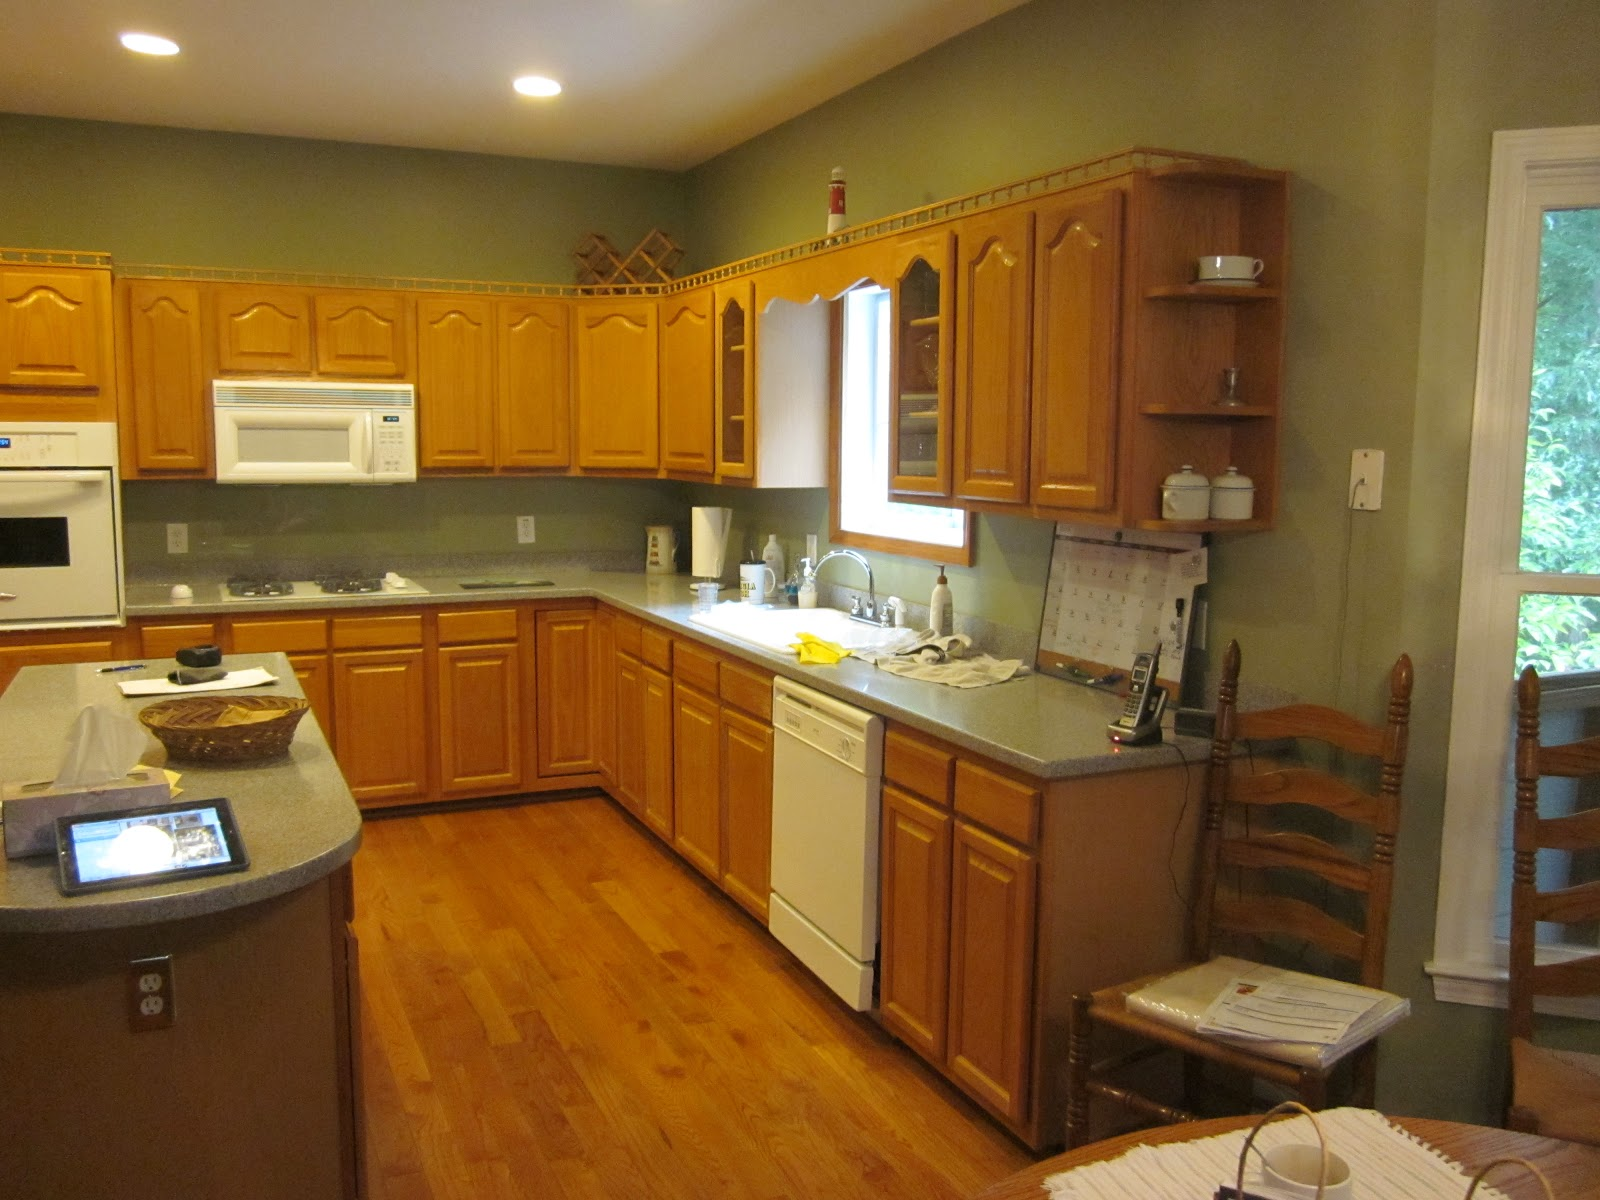 Universal Design Kitchen Designing For Different Abilities